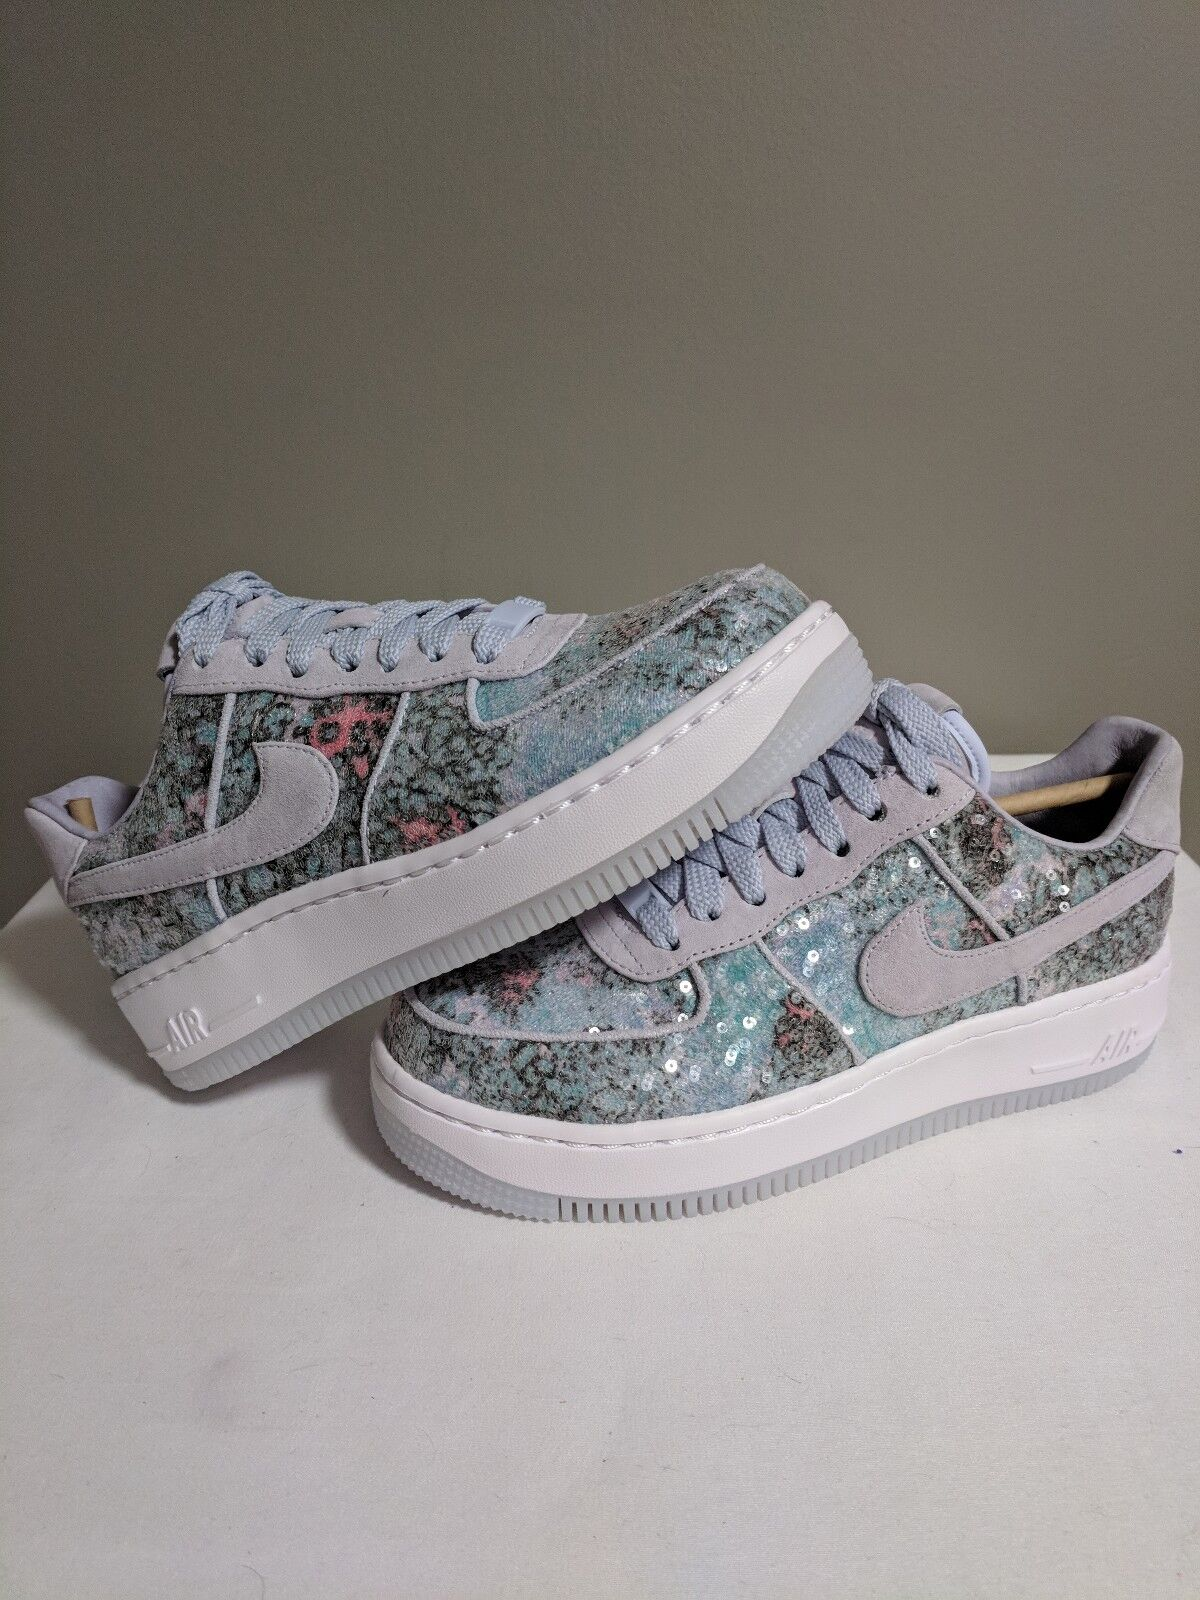 Nike Wmns AF1 Upstep 35 Glass Slipper Air Force 1 one Palest Purple 917589-500 7